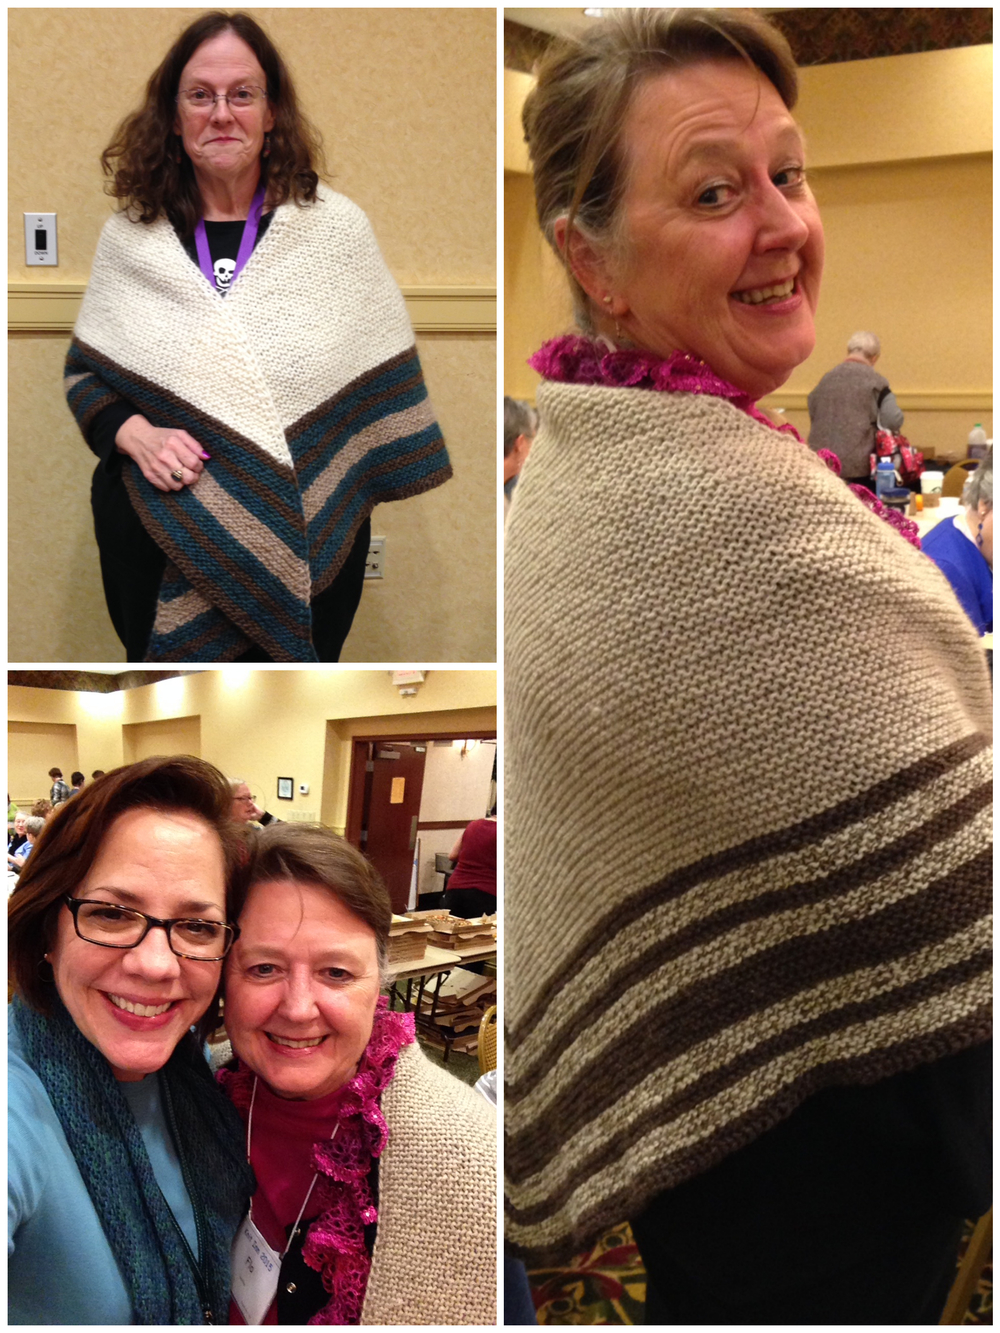 Debra (top left) and Flo with their Vintage Winter Shawls